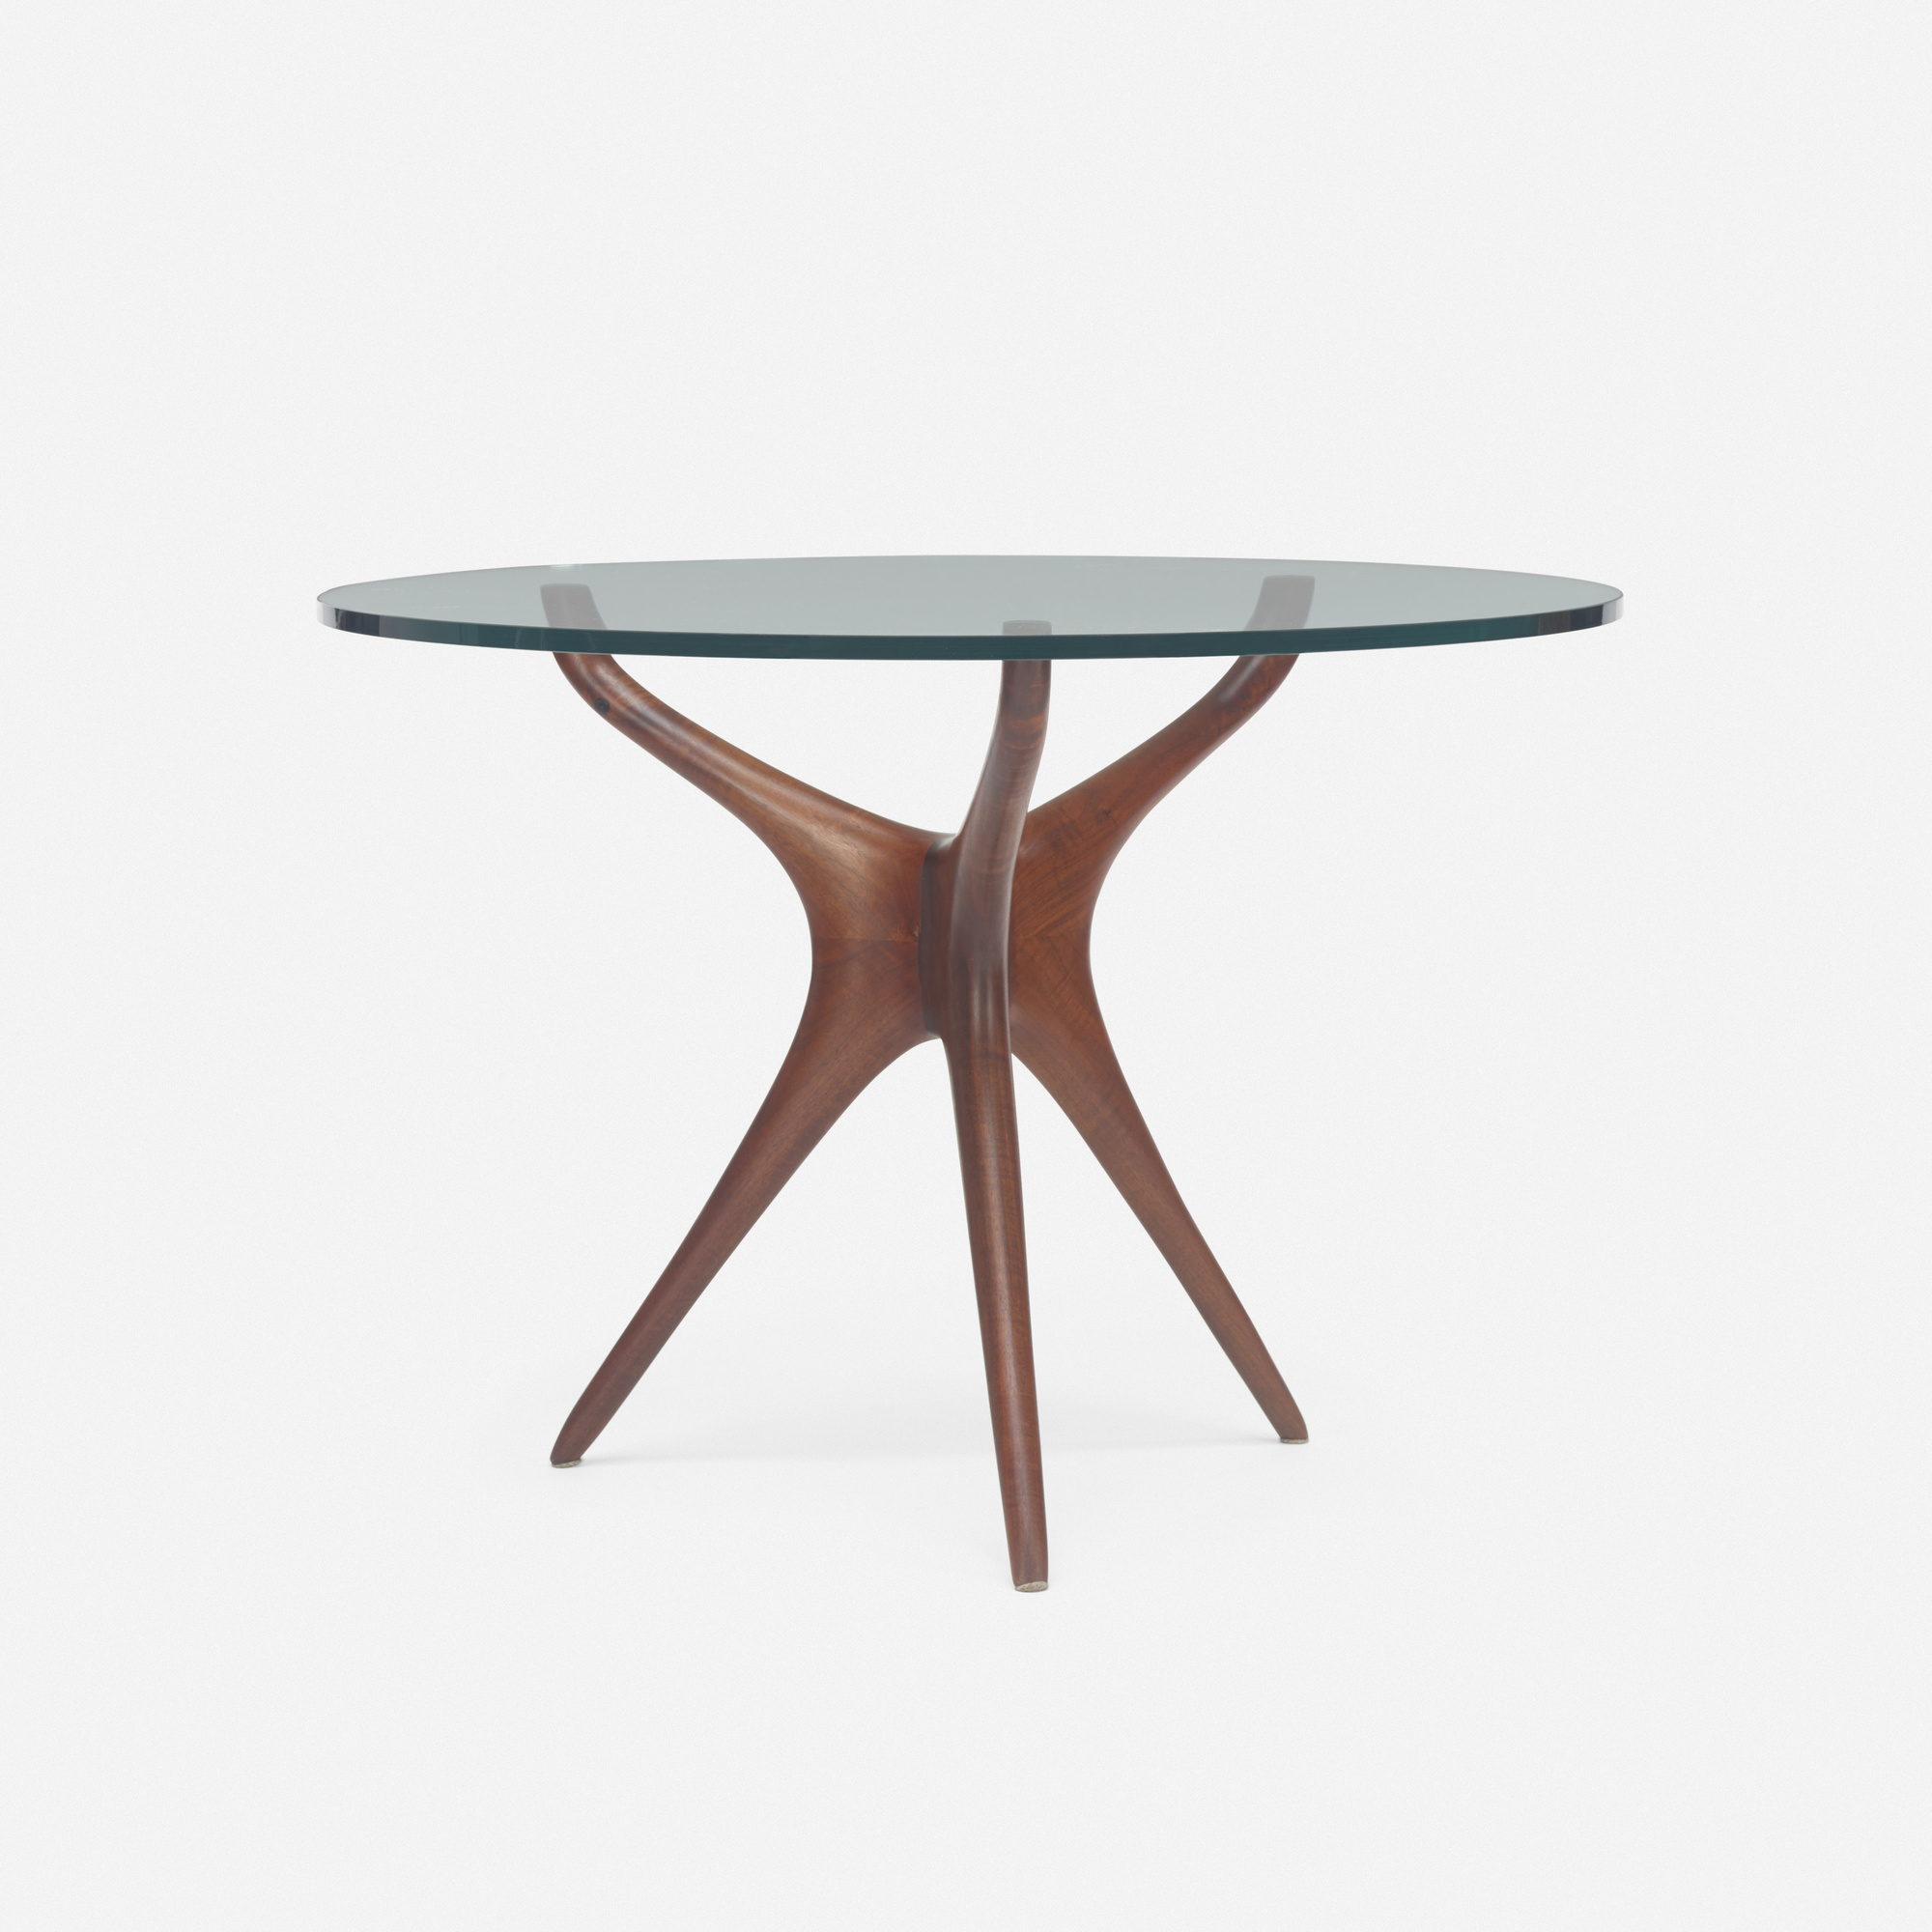 354 Vladimir Kagan Tri symmetric dining table Design 20